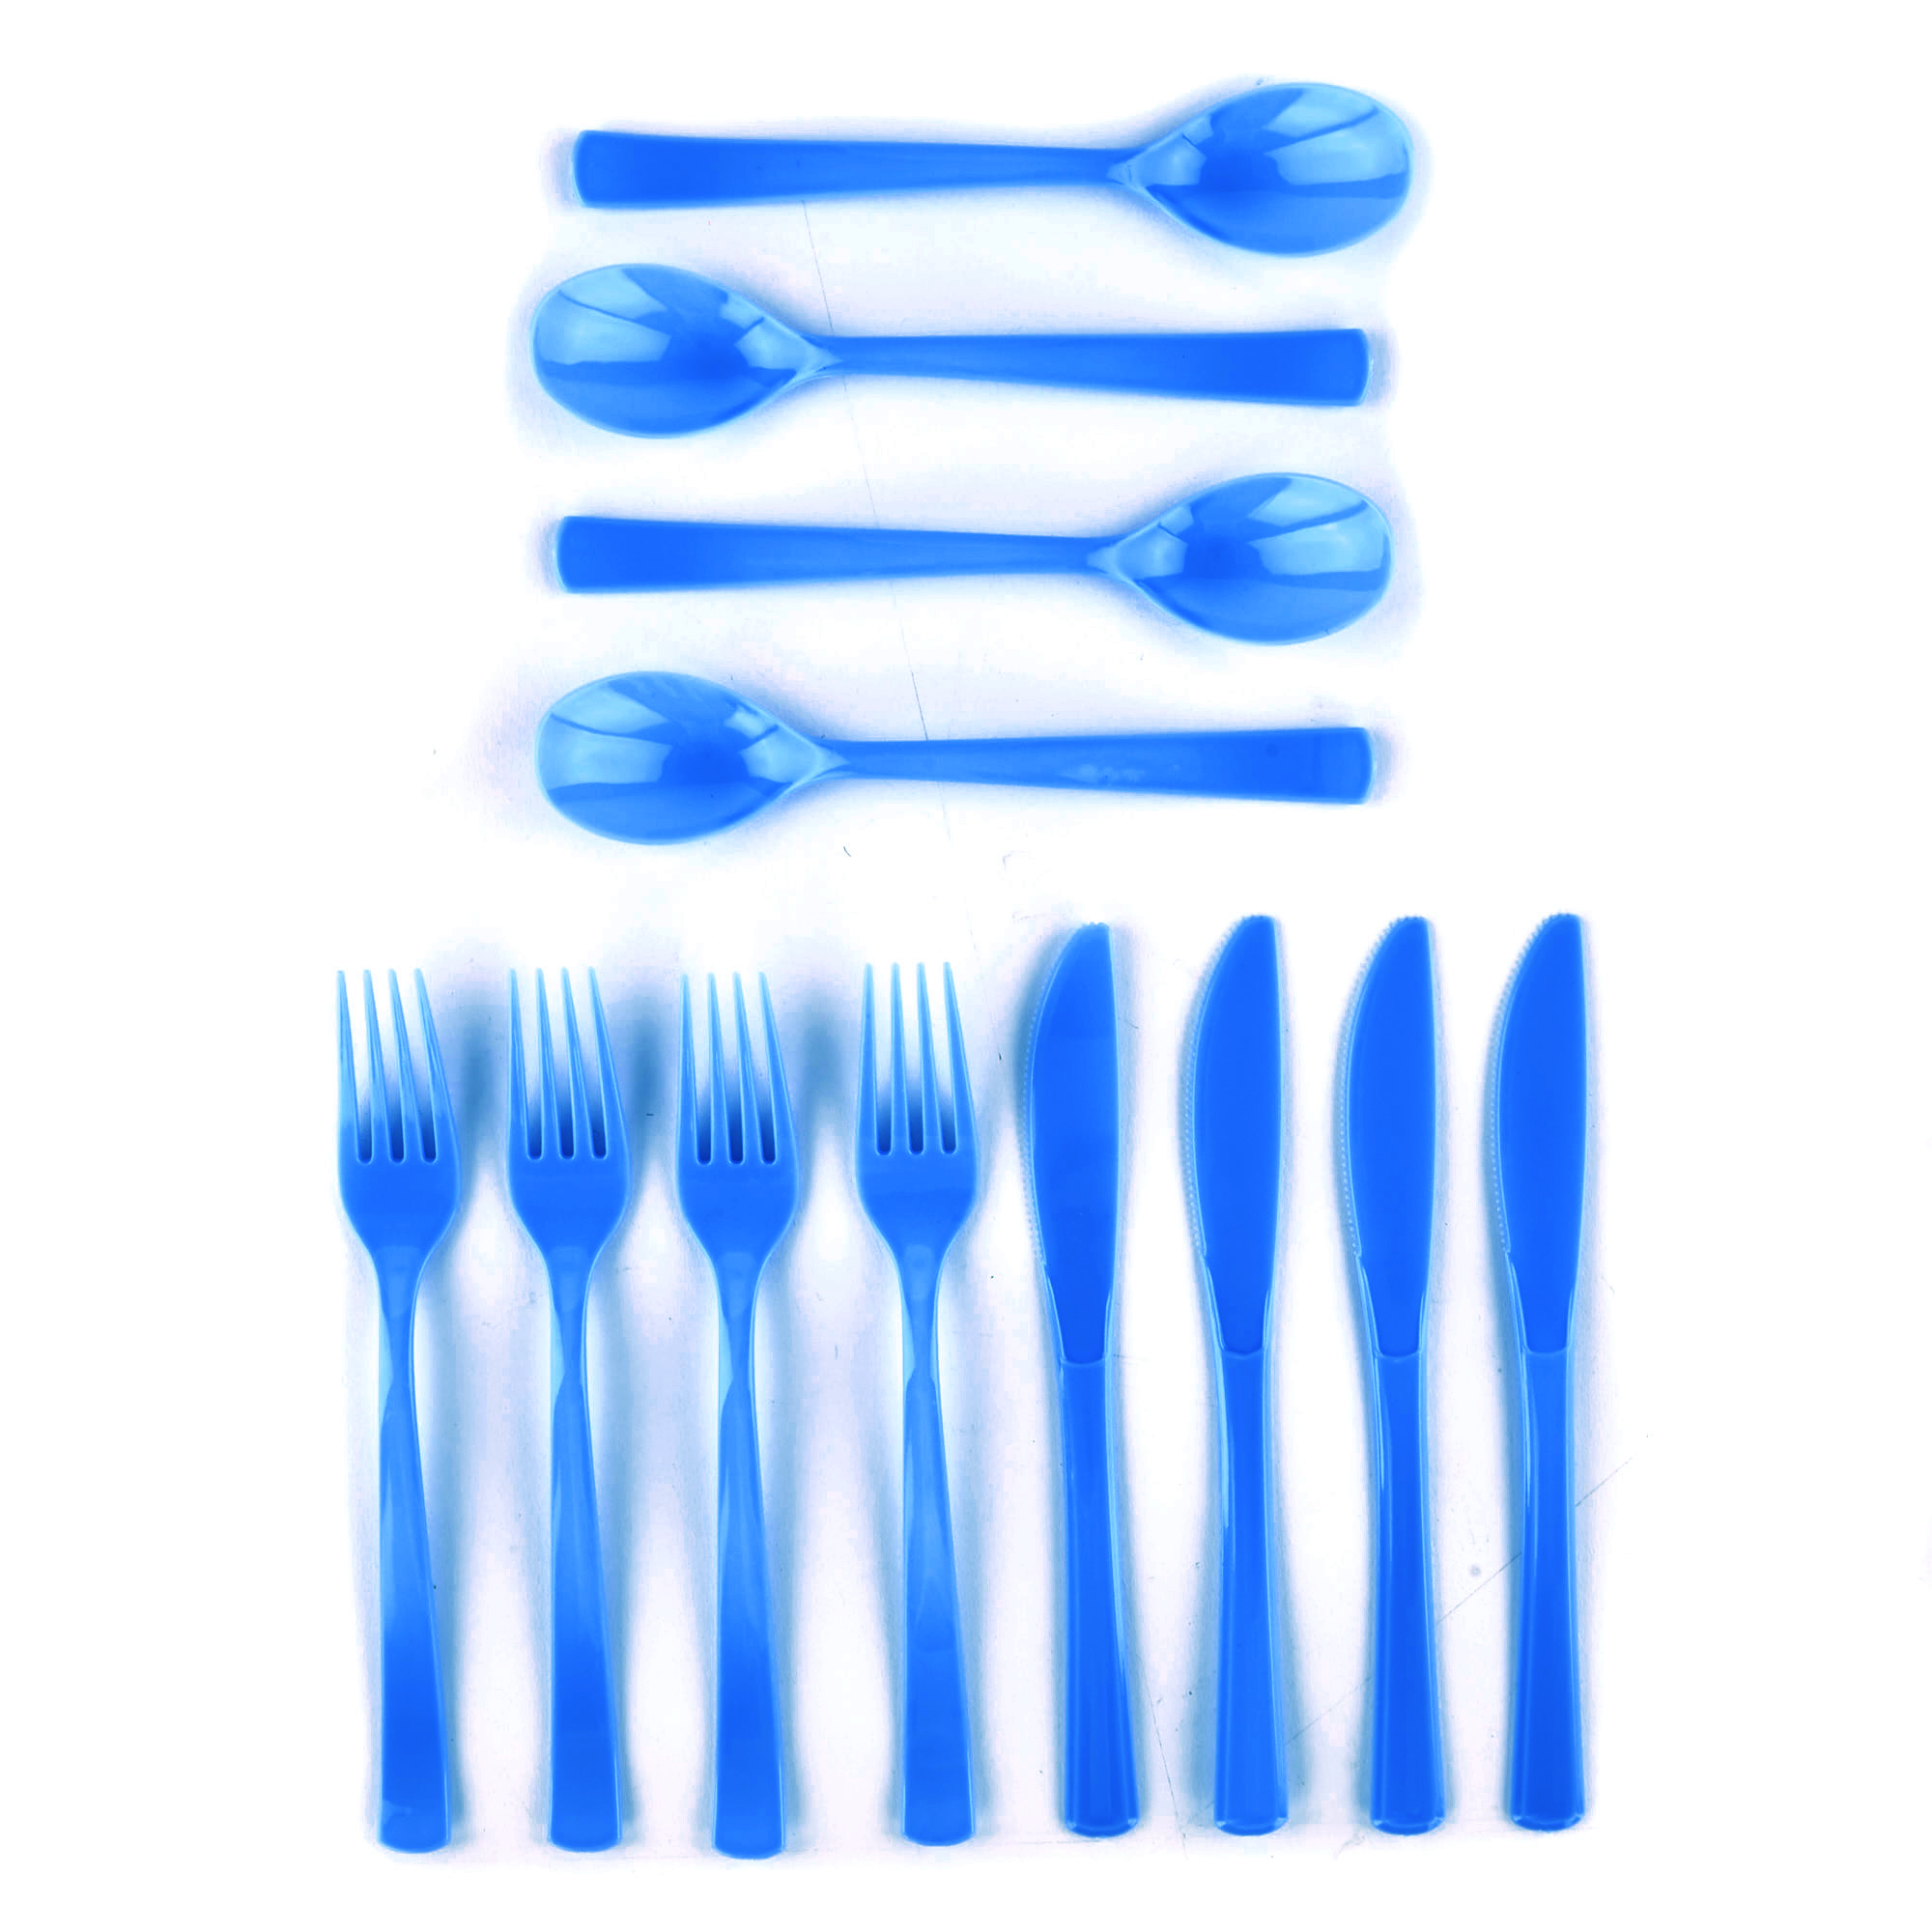 Reusable Blue Plastic Cutlery Set - 18 Pieces